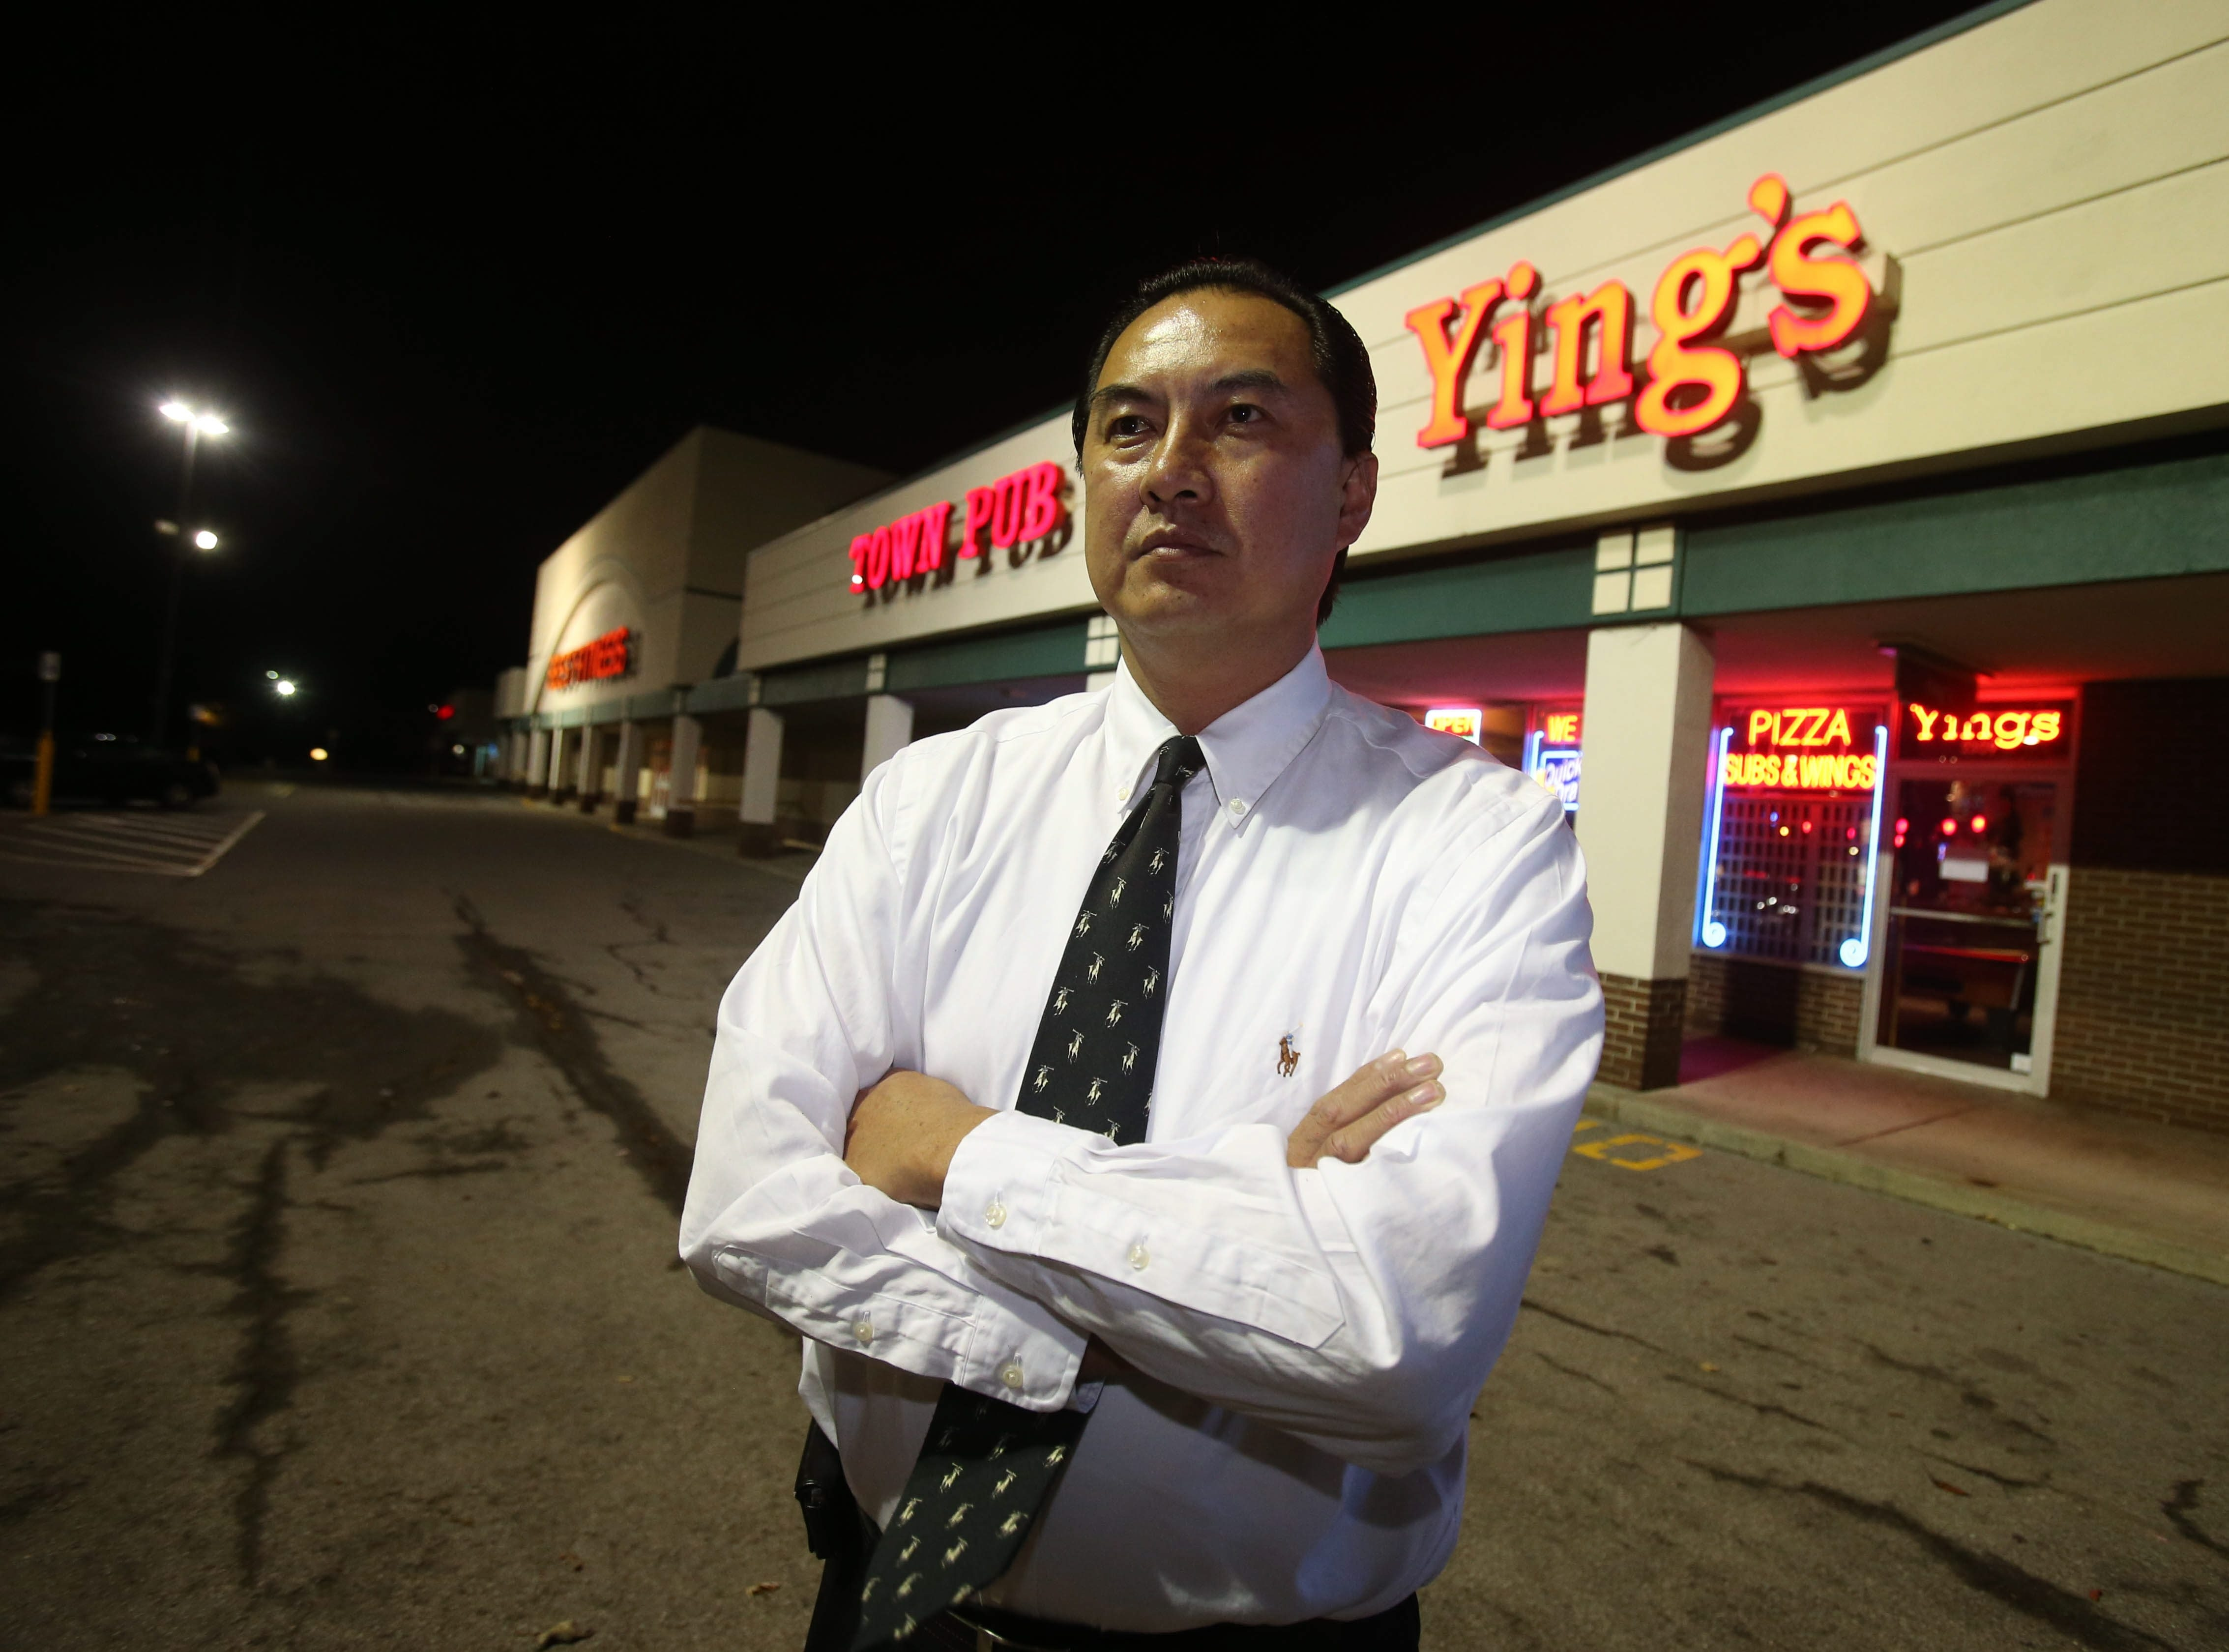 Jimmy Ying, owner of Ying's Wings and Things, accuses Town of Tonawanda police of harassment and racial prejudice.